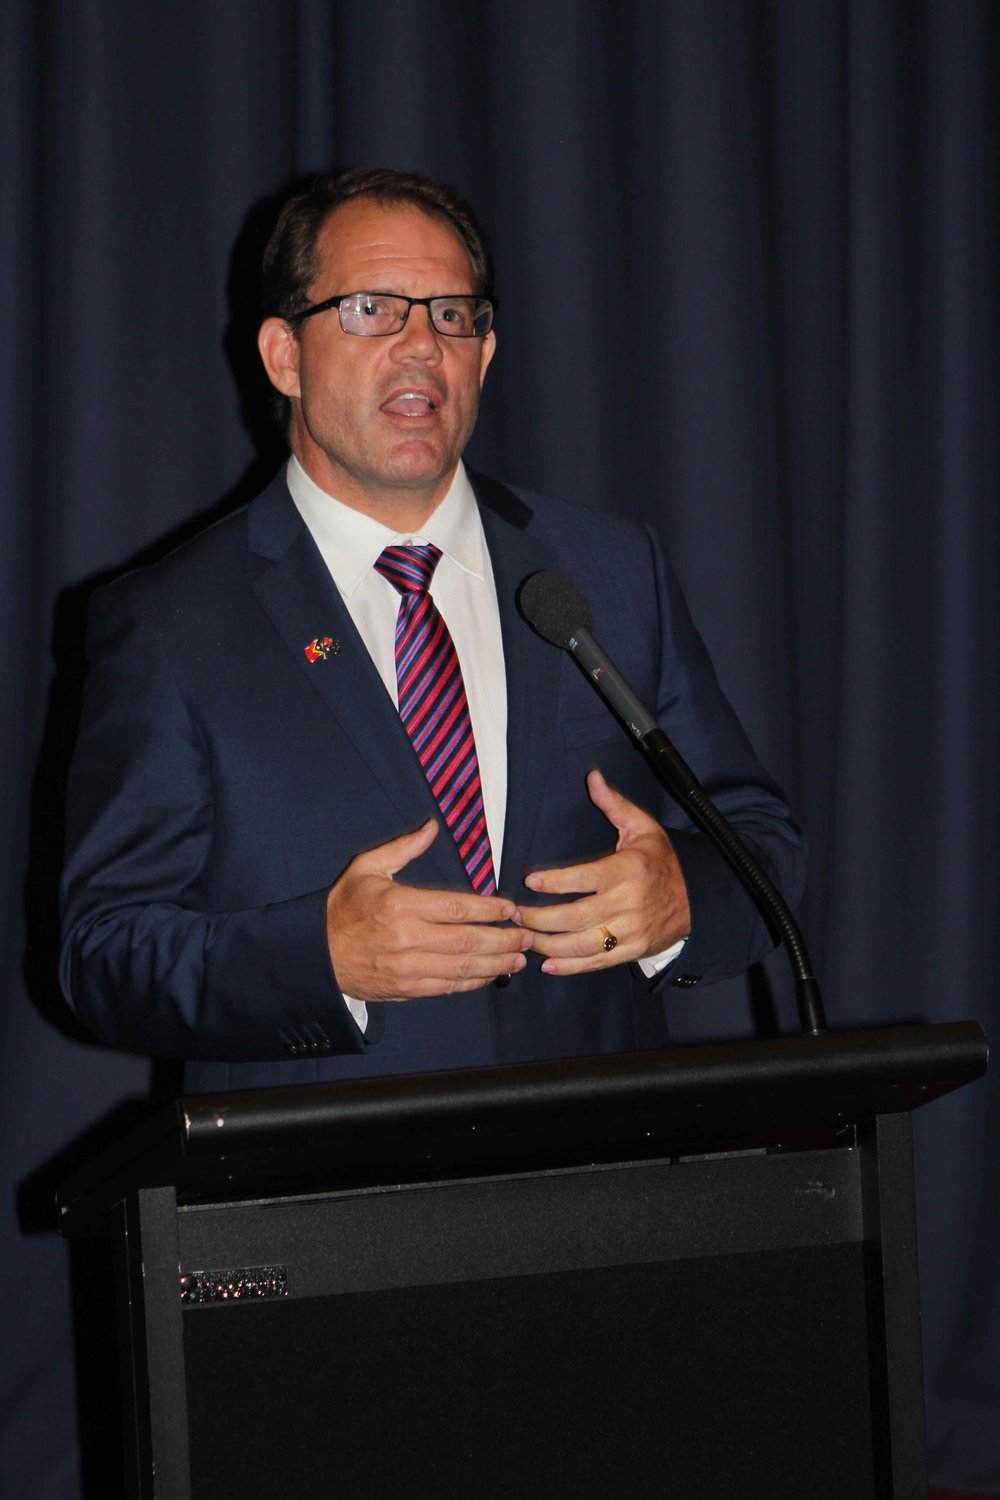 The Hon. Luke Gosling MP, Member for Solomon.